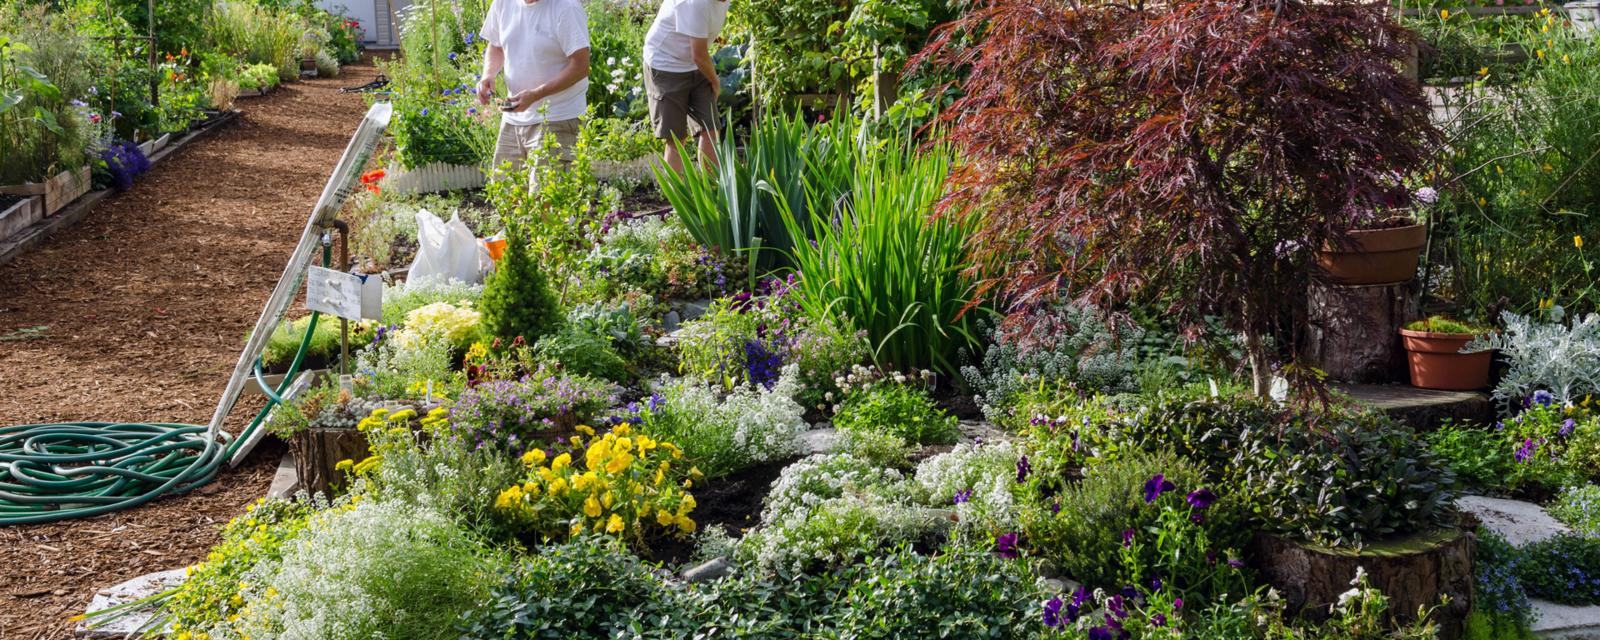 The Brains Secret Gardeners >> Gardening Could Be The Hobby That Helps You Live To 100